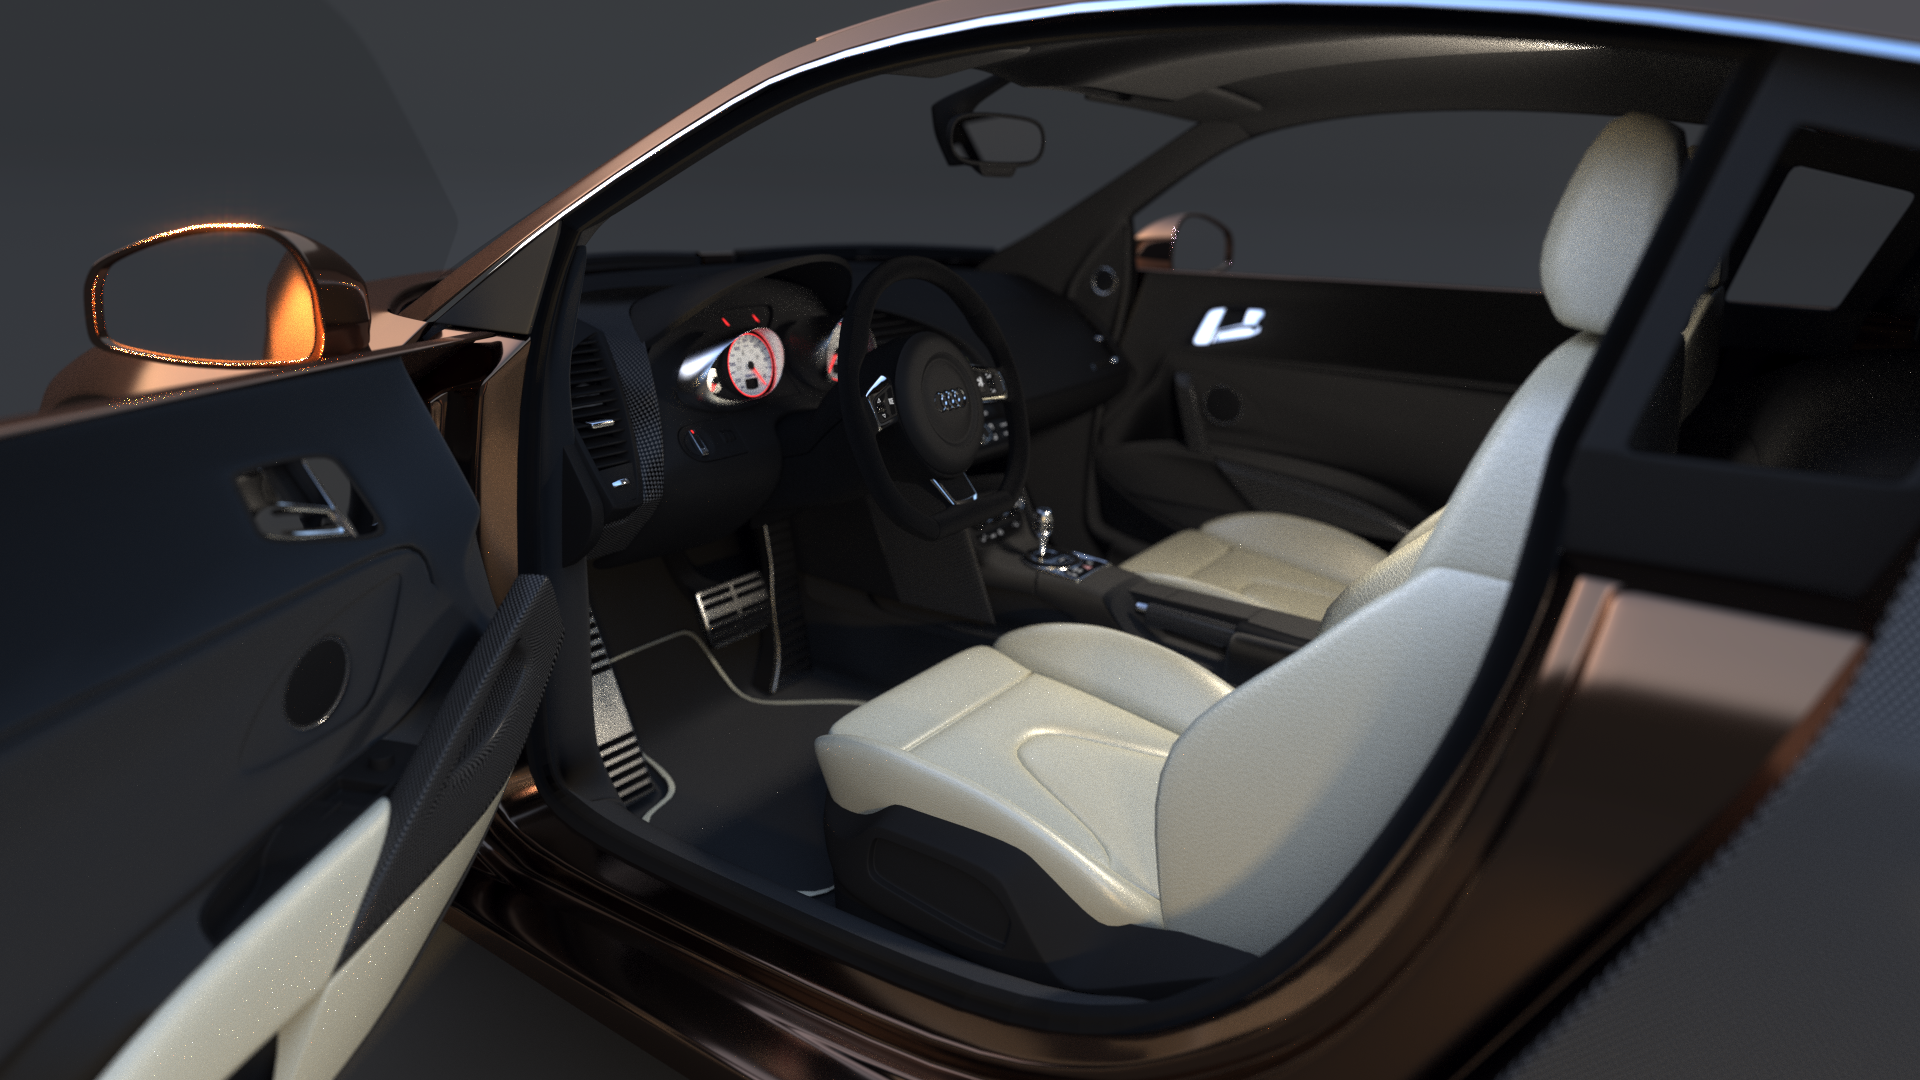 audi r8 3d model with hq interior by neubi3d on deviantart. Black Bedroom Furniture Sets. Home Design Ideas